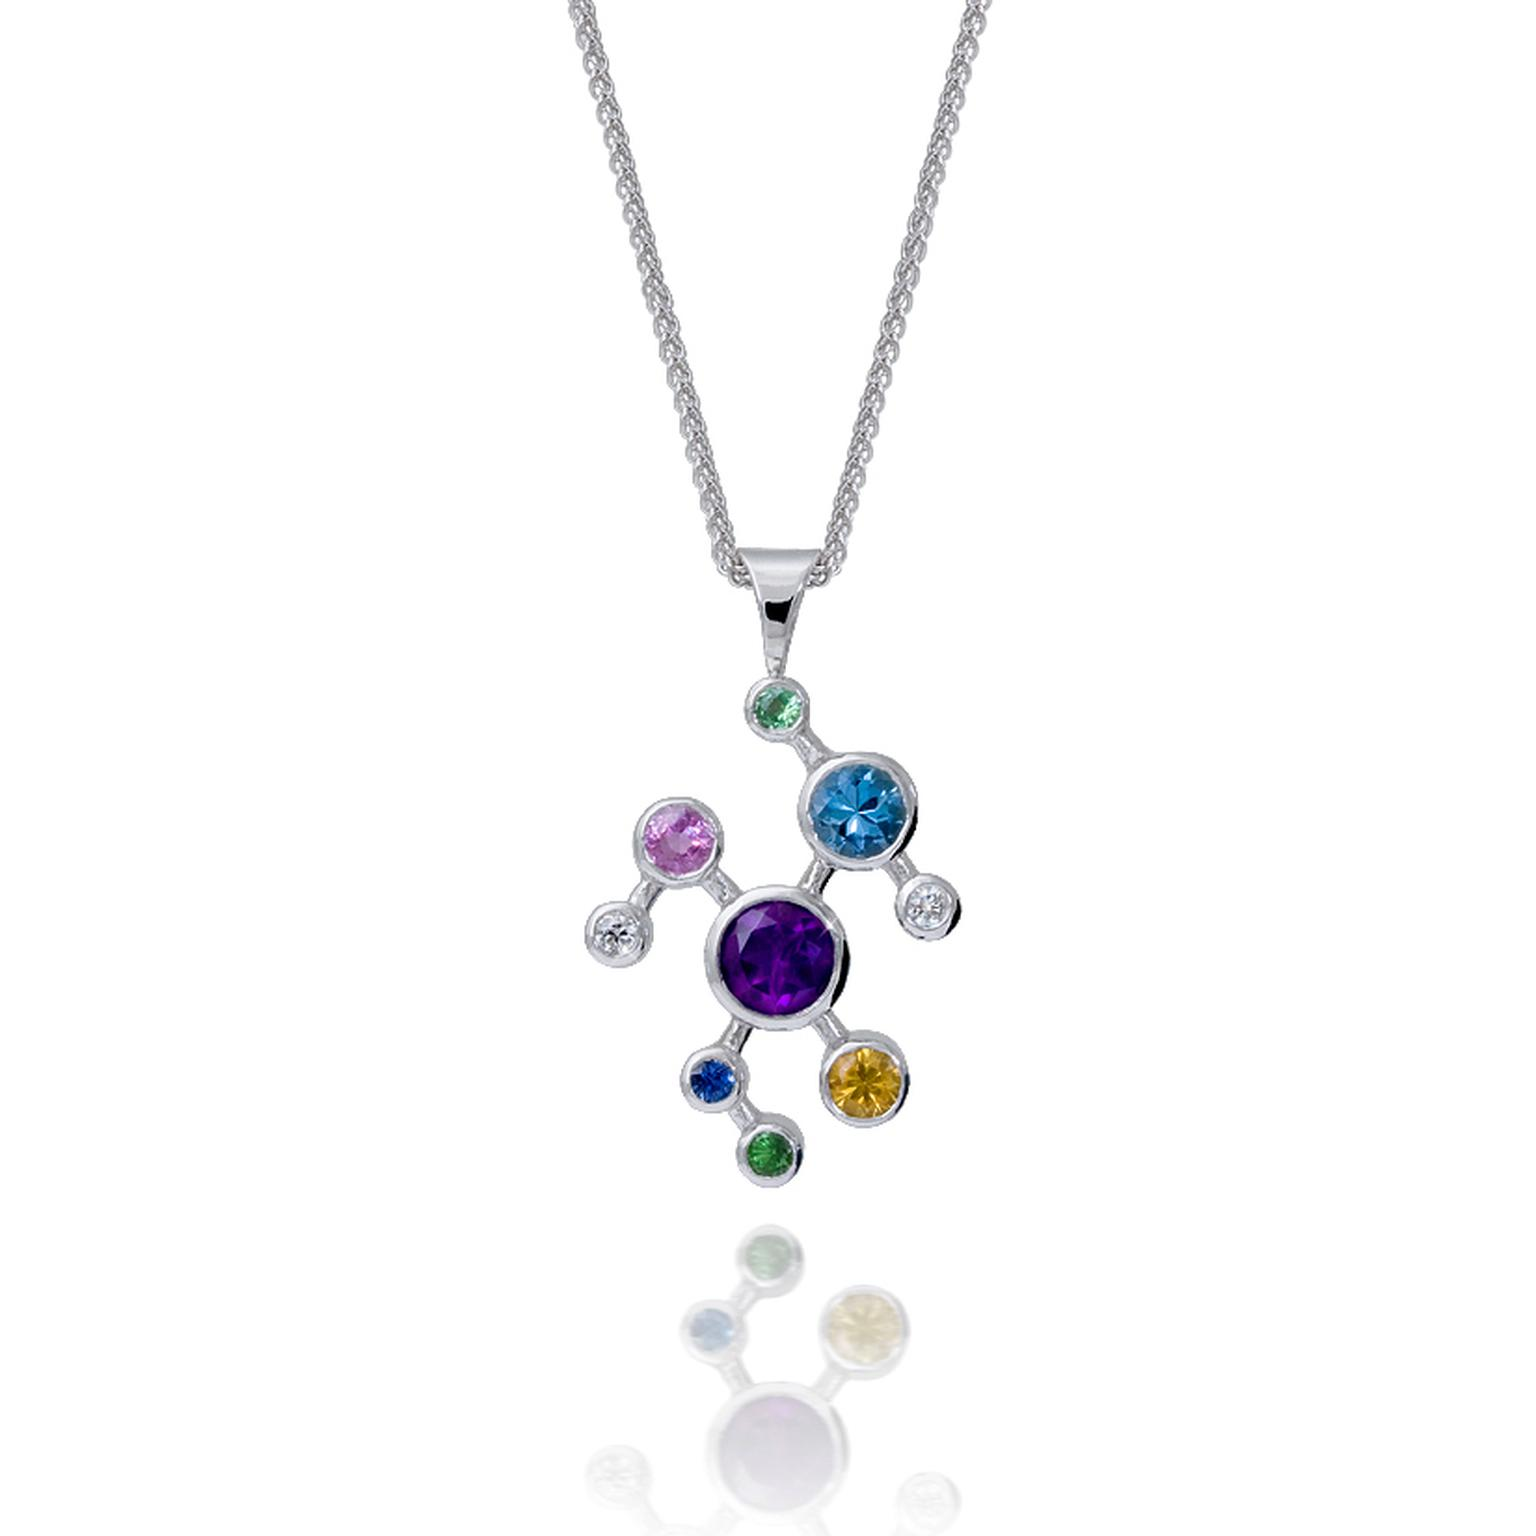 Alexander Davis Dendritic white gold and coloured gemstone pendant